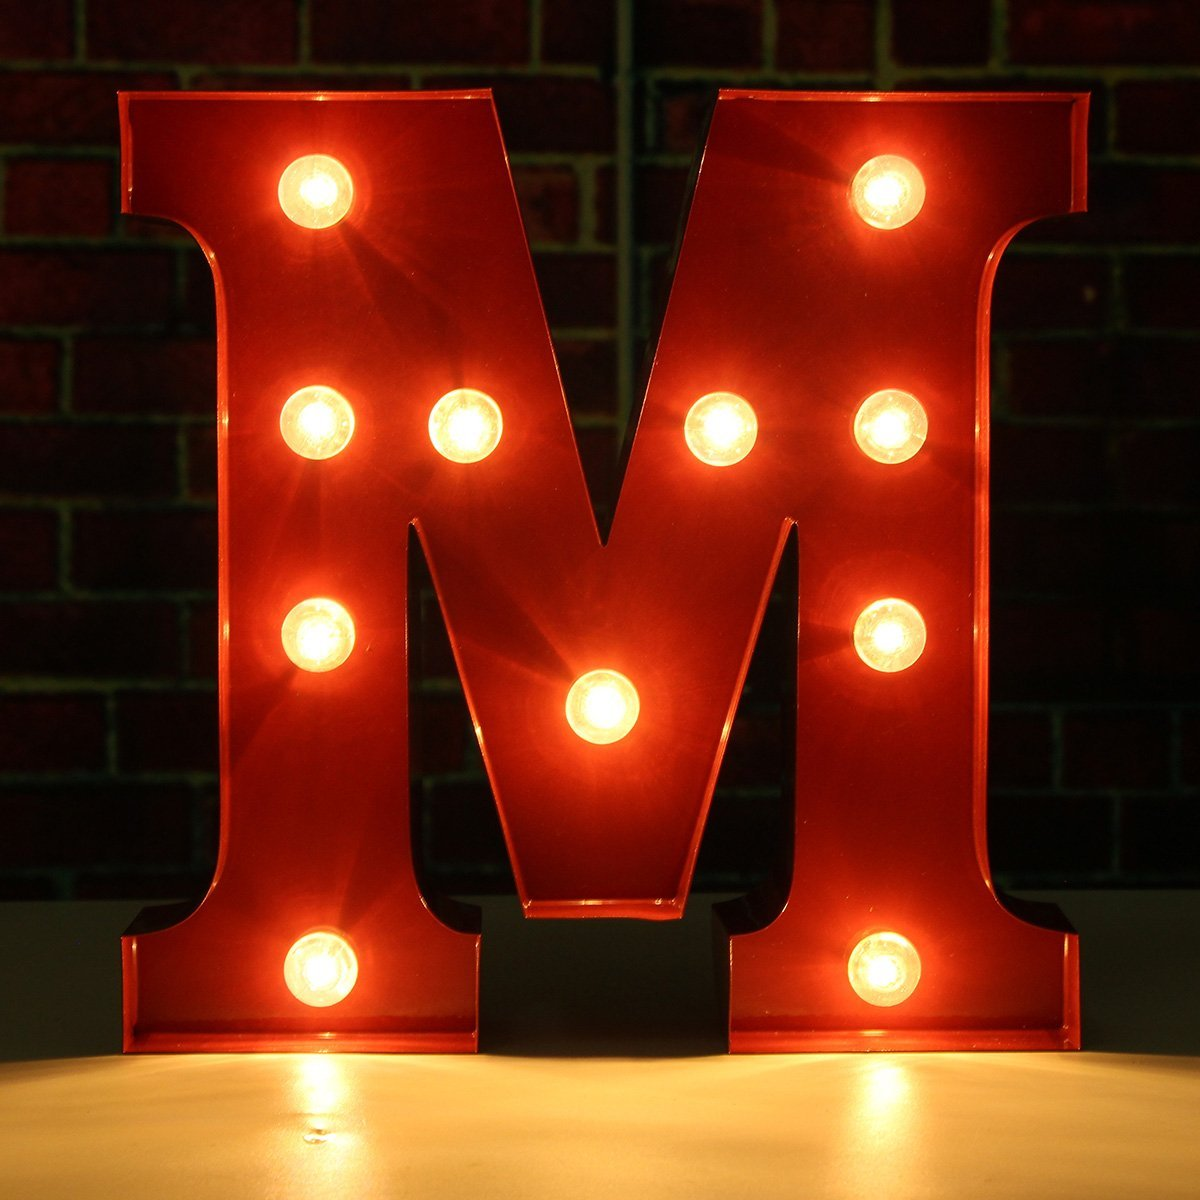 SOLMORE 23CM x 5.5CM LED Letter Light DIY Vintage Metal Sign Carnival Wall Marquee Lights Decoration M 0